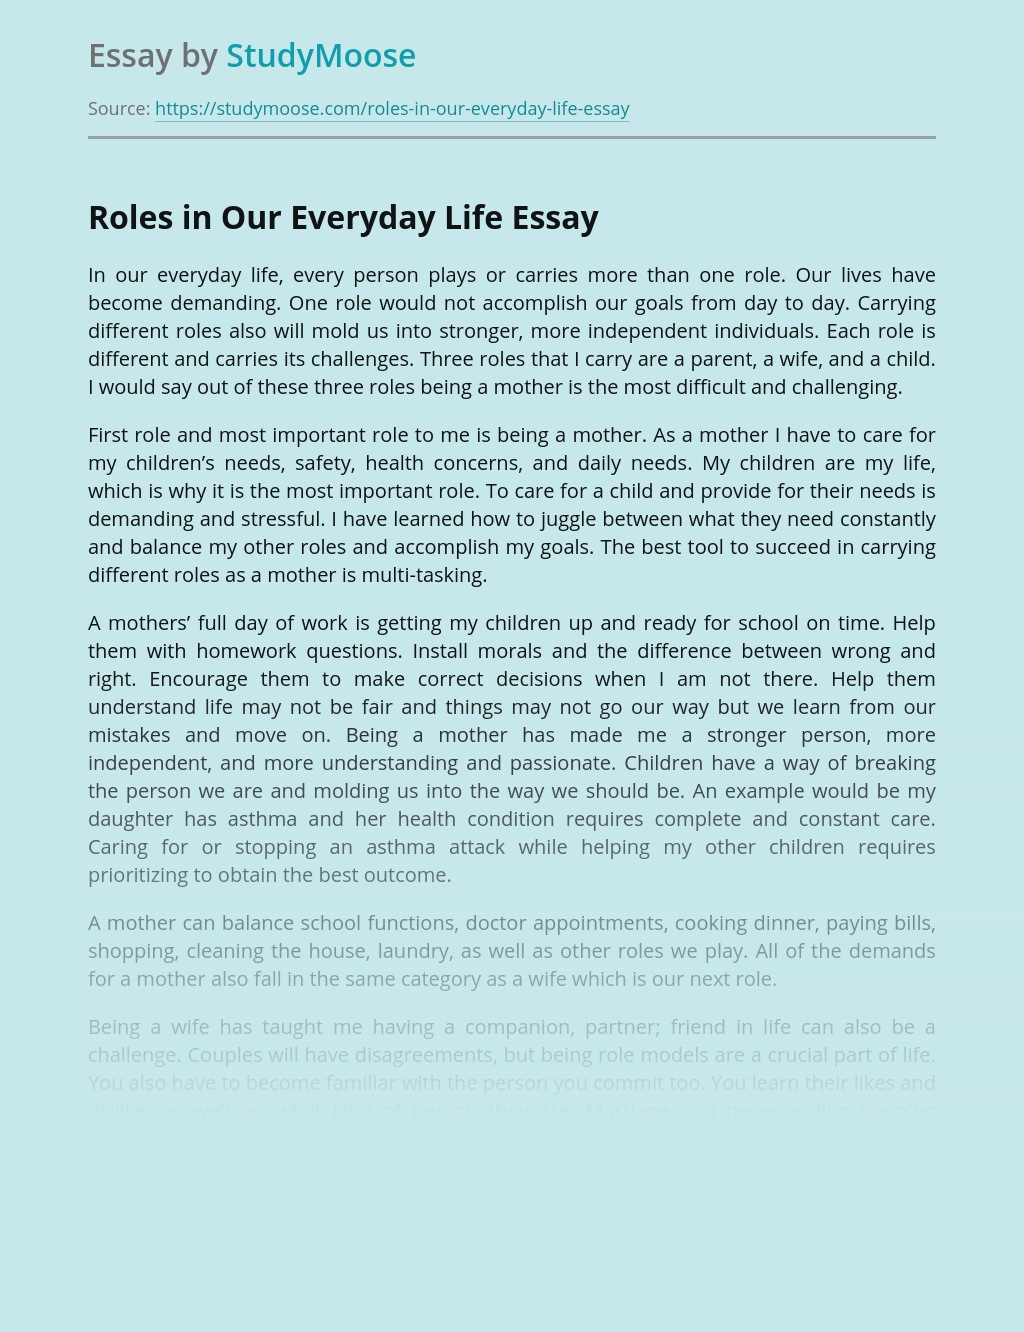 Roles in Our Everyday Life